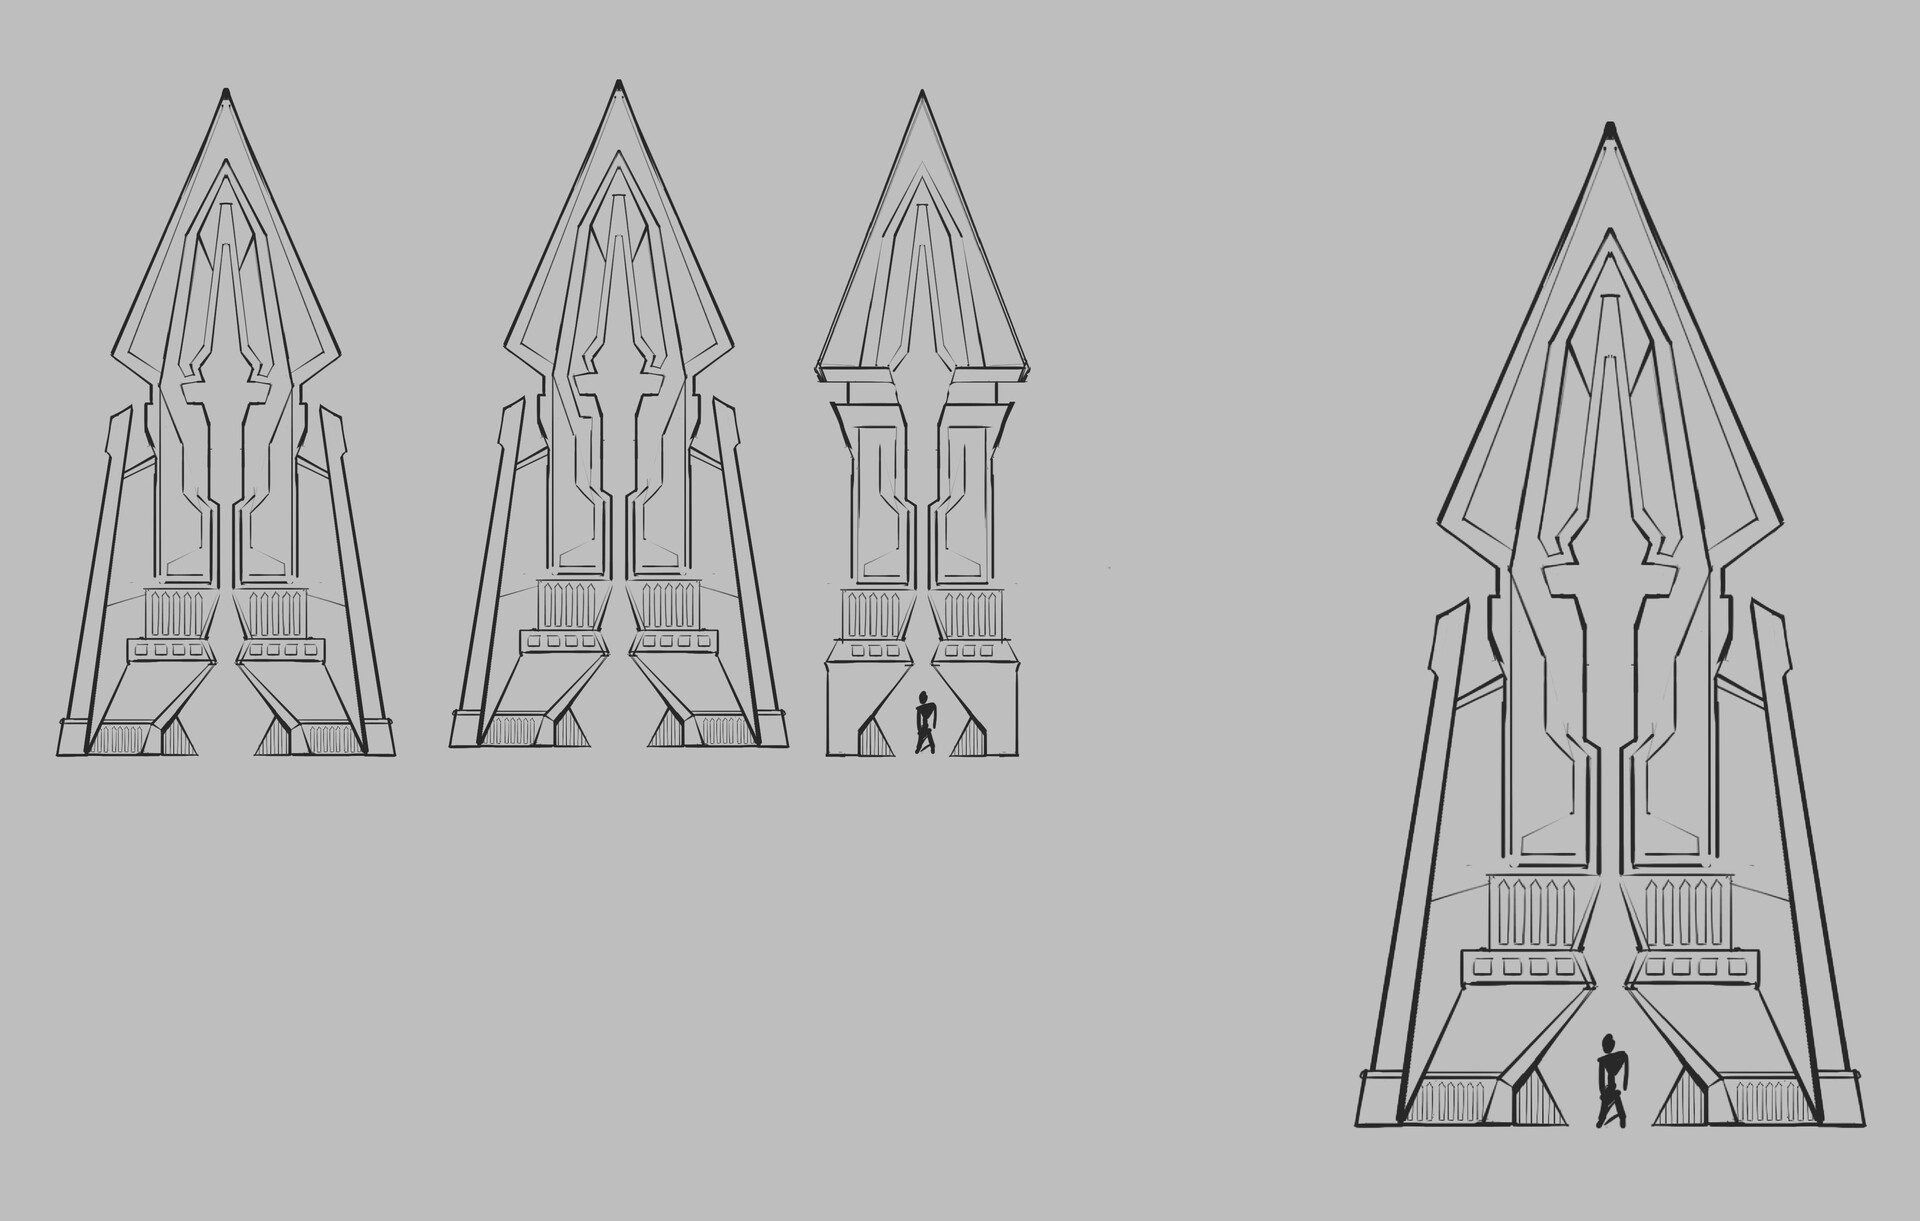 Some sketches I did for the gate re-design, I used this as a starting point in Maya but soon realized I had to simplify the shapes quite a bit